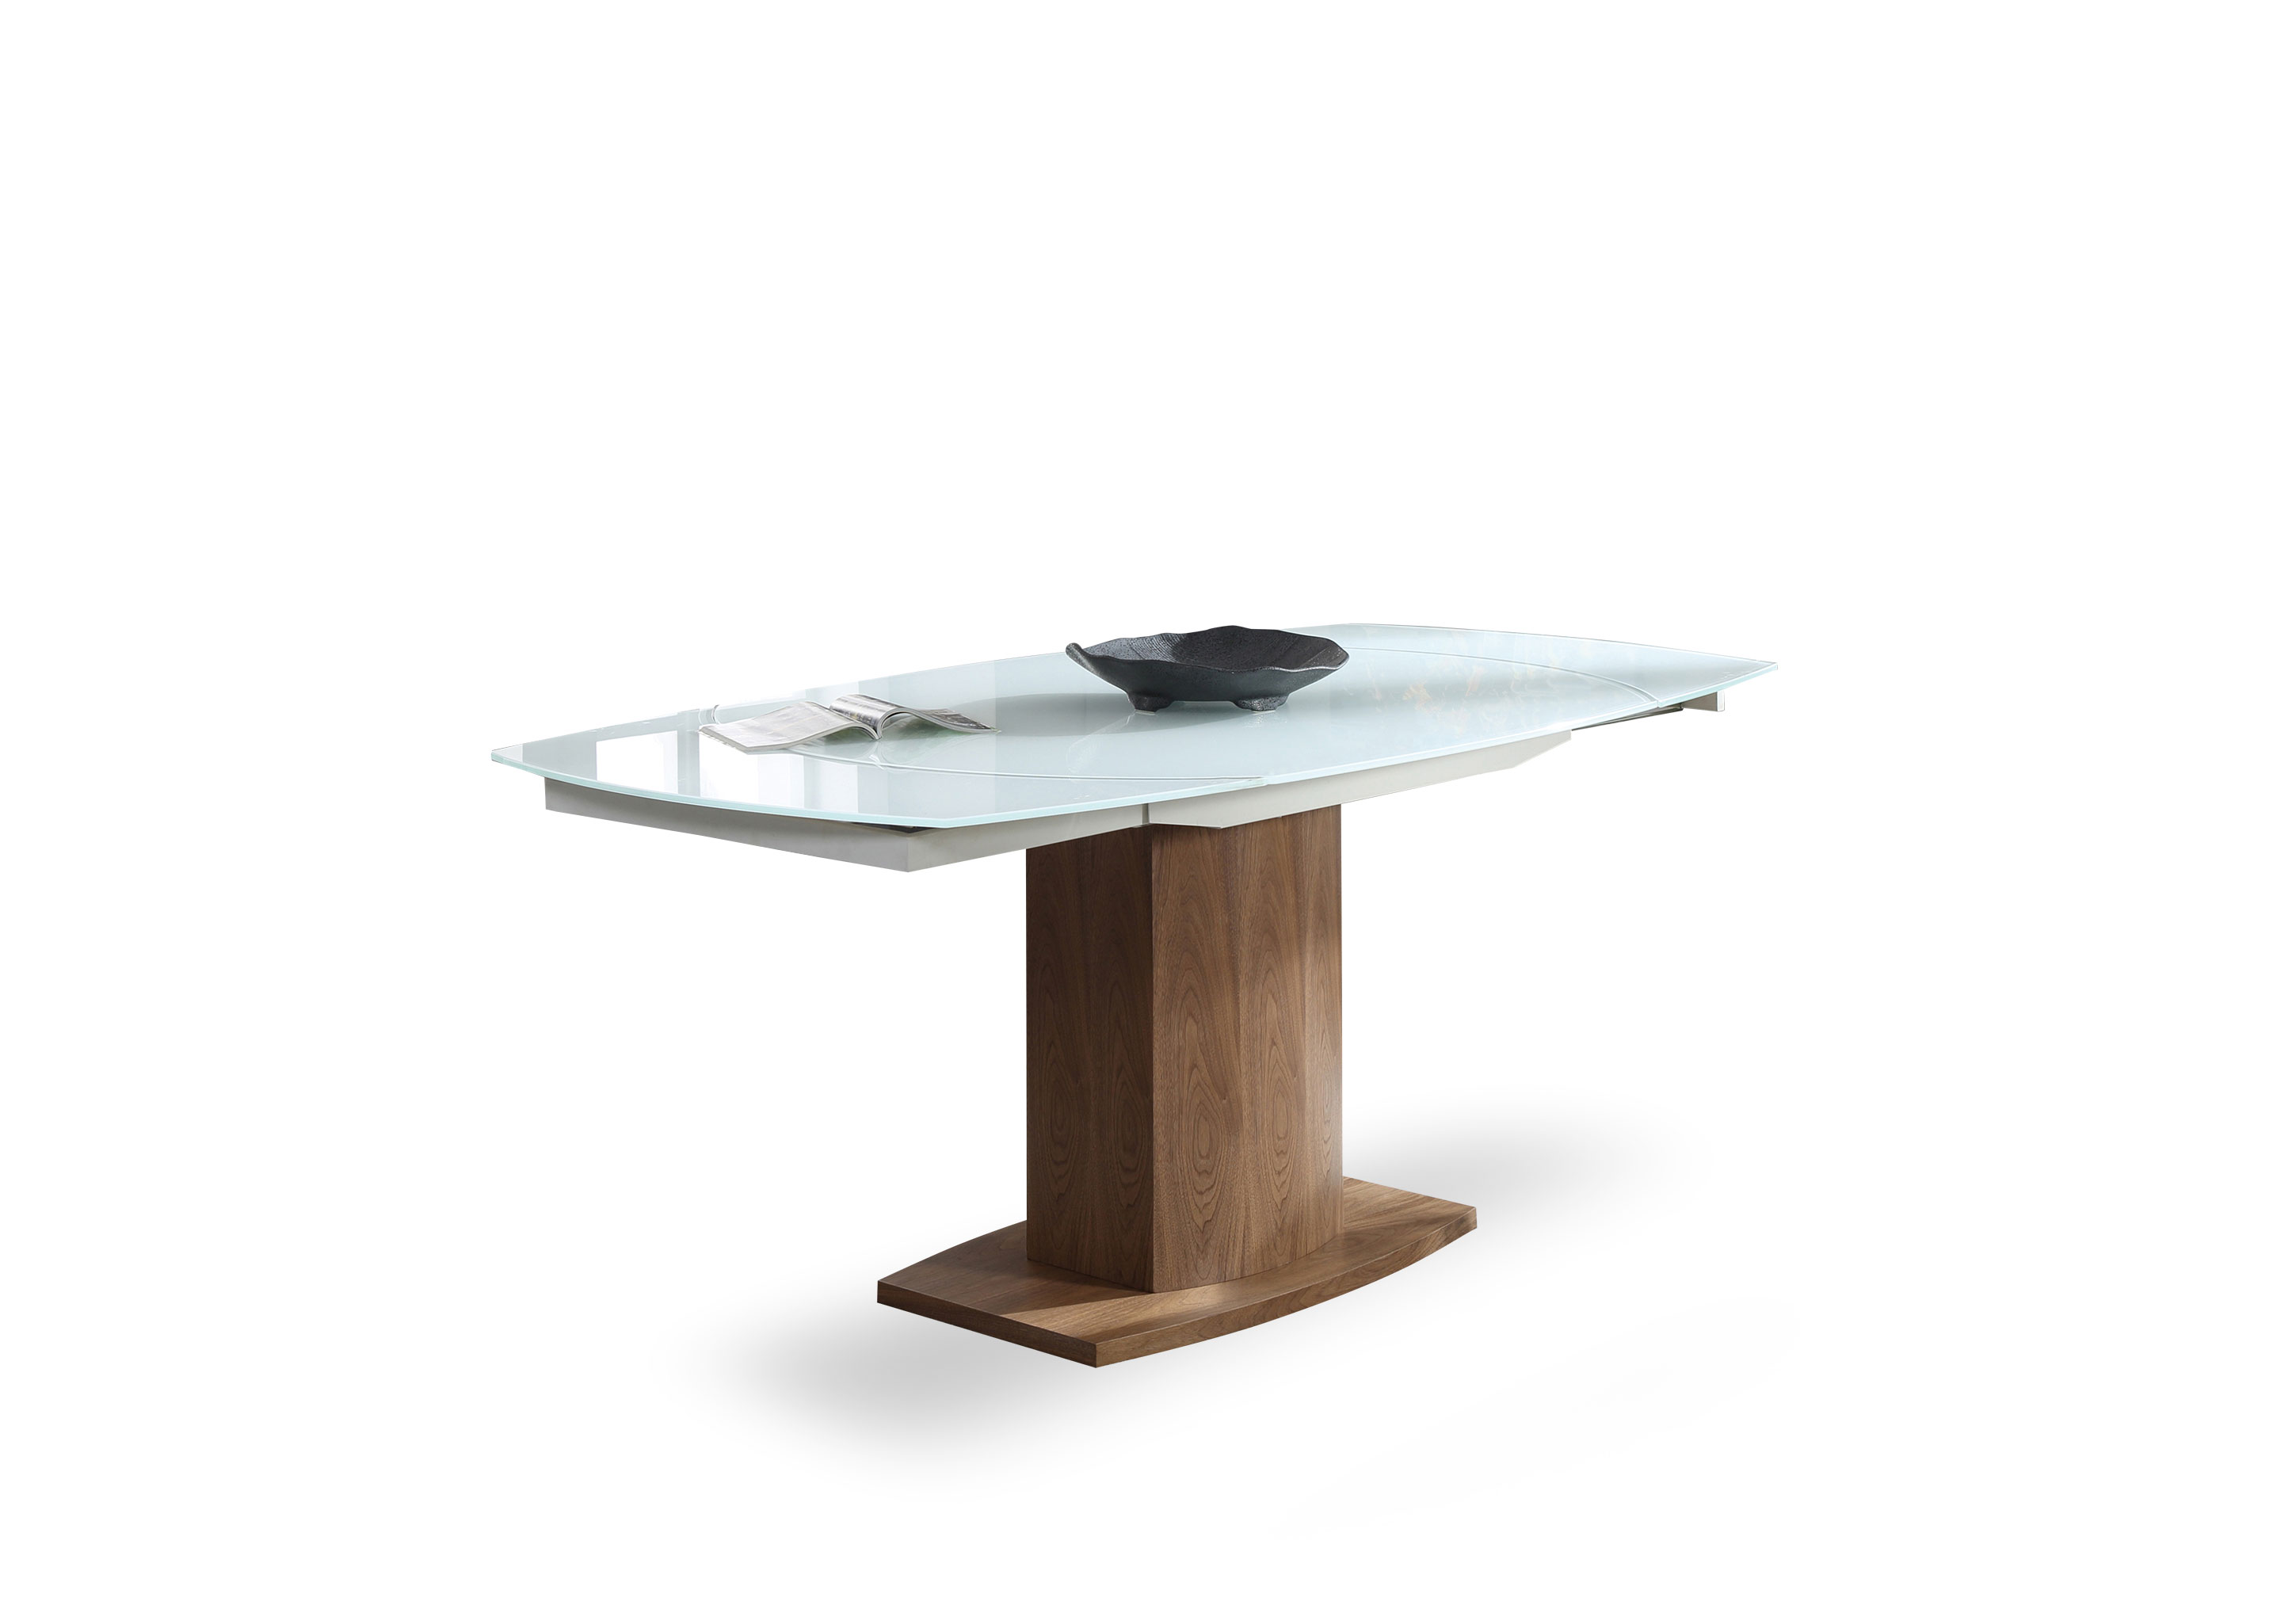 Baobab – Oval Glass White Extendable Kitchen Table